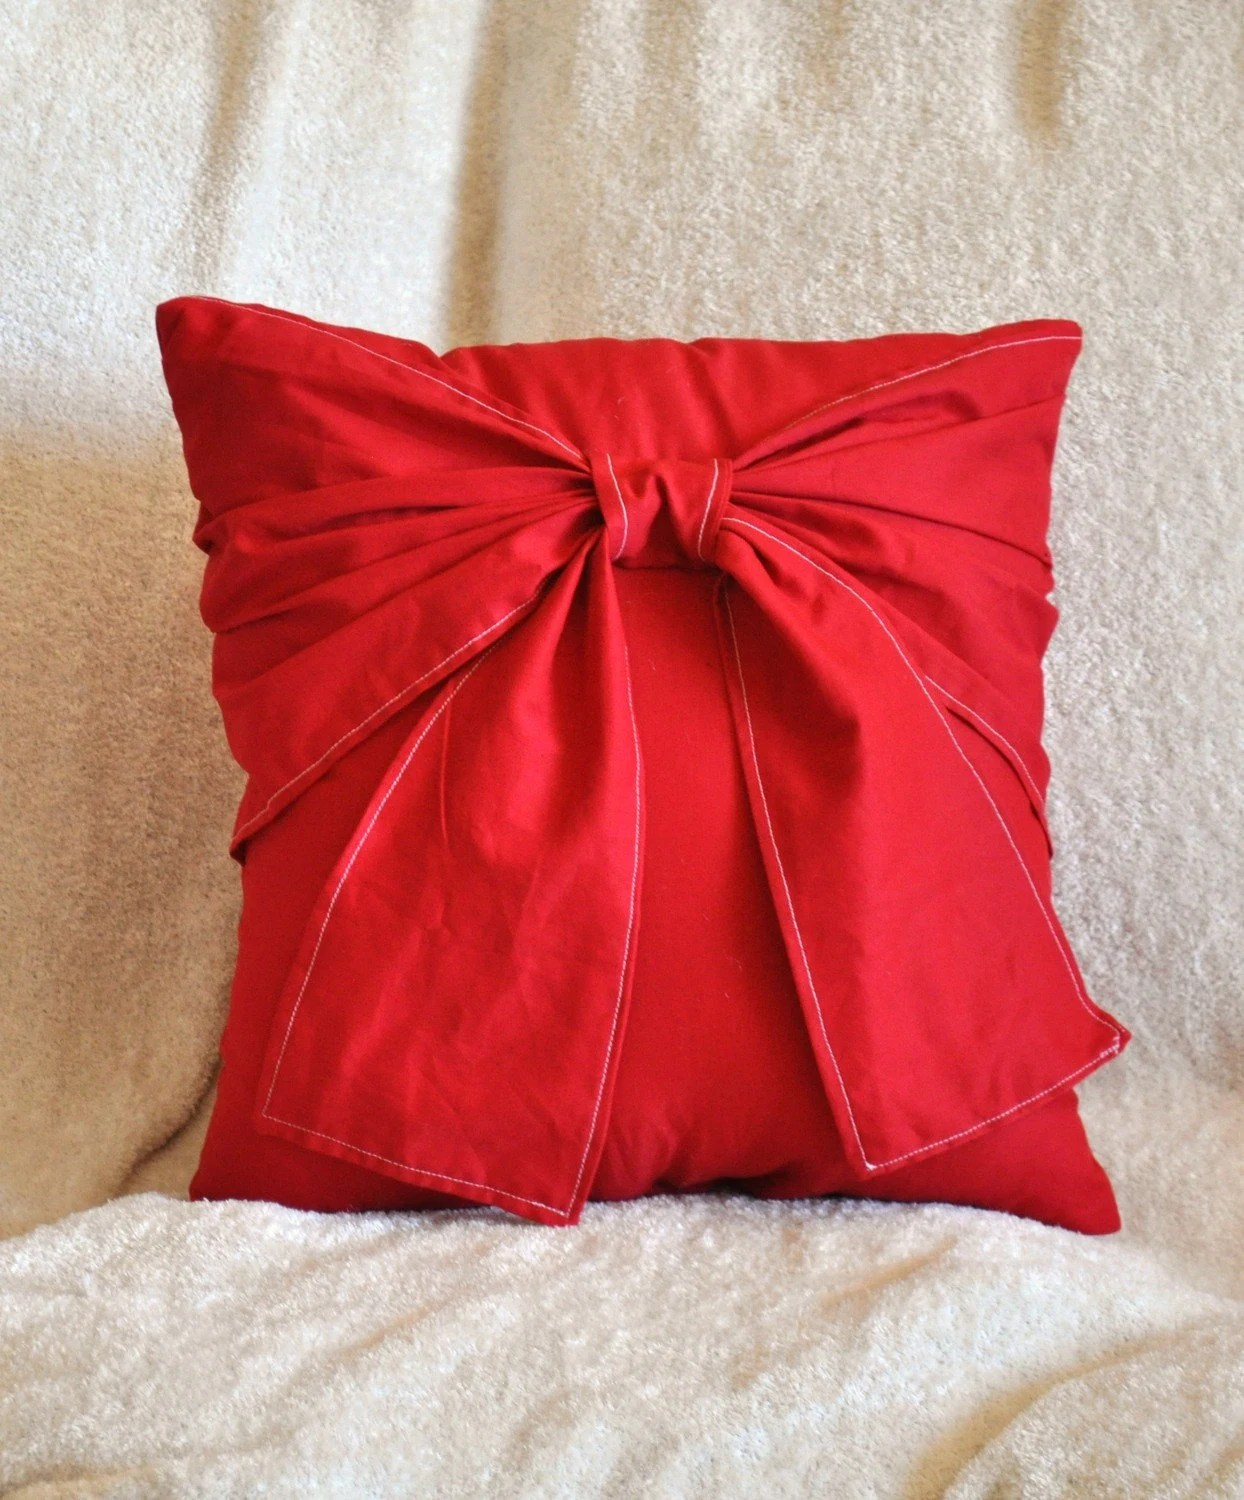 Best Red Decorative Pillow Big Bow Pillow 14X14 Choose Your Color This Month